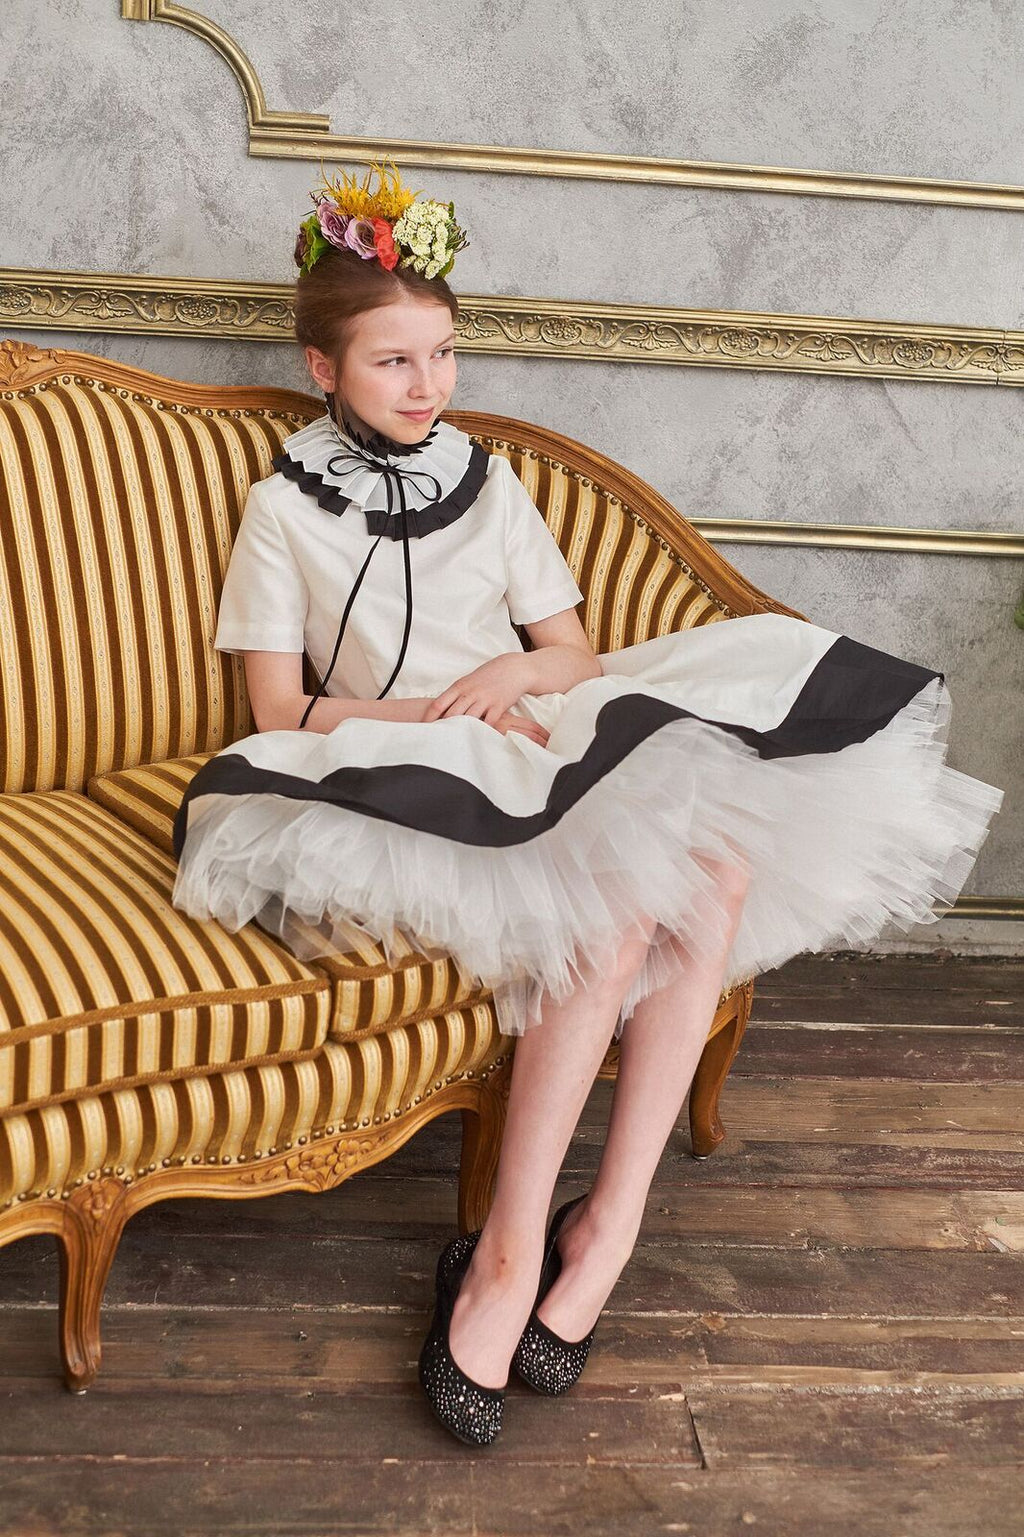 Gorgeous Ivory & Black Taffeta Girls High-Low Dress with Detachable Pleated Collar - LAZY FRANCIS - Shop in store at 406 Kings Road, Chelsea, London or shop online at www.lazyfrancis.com